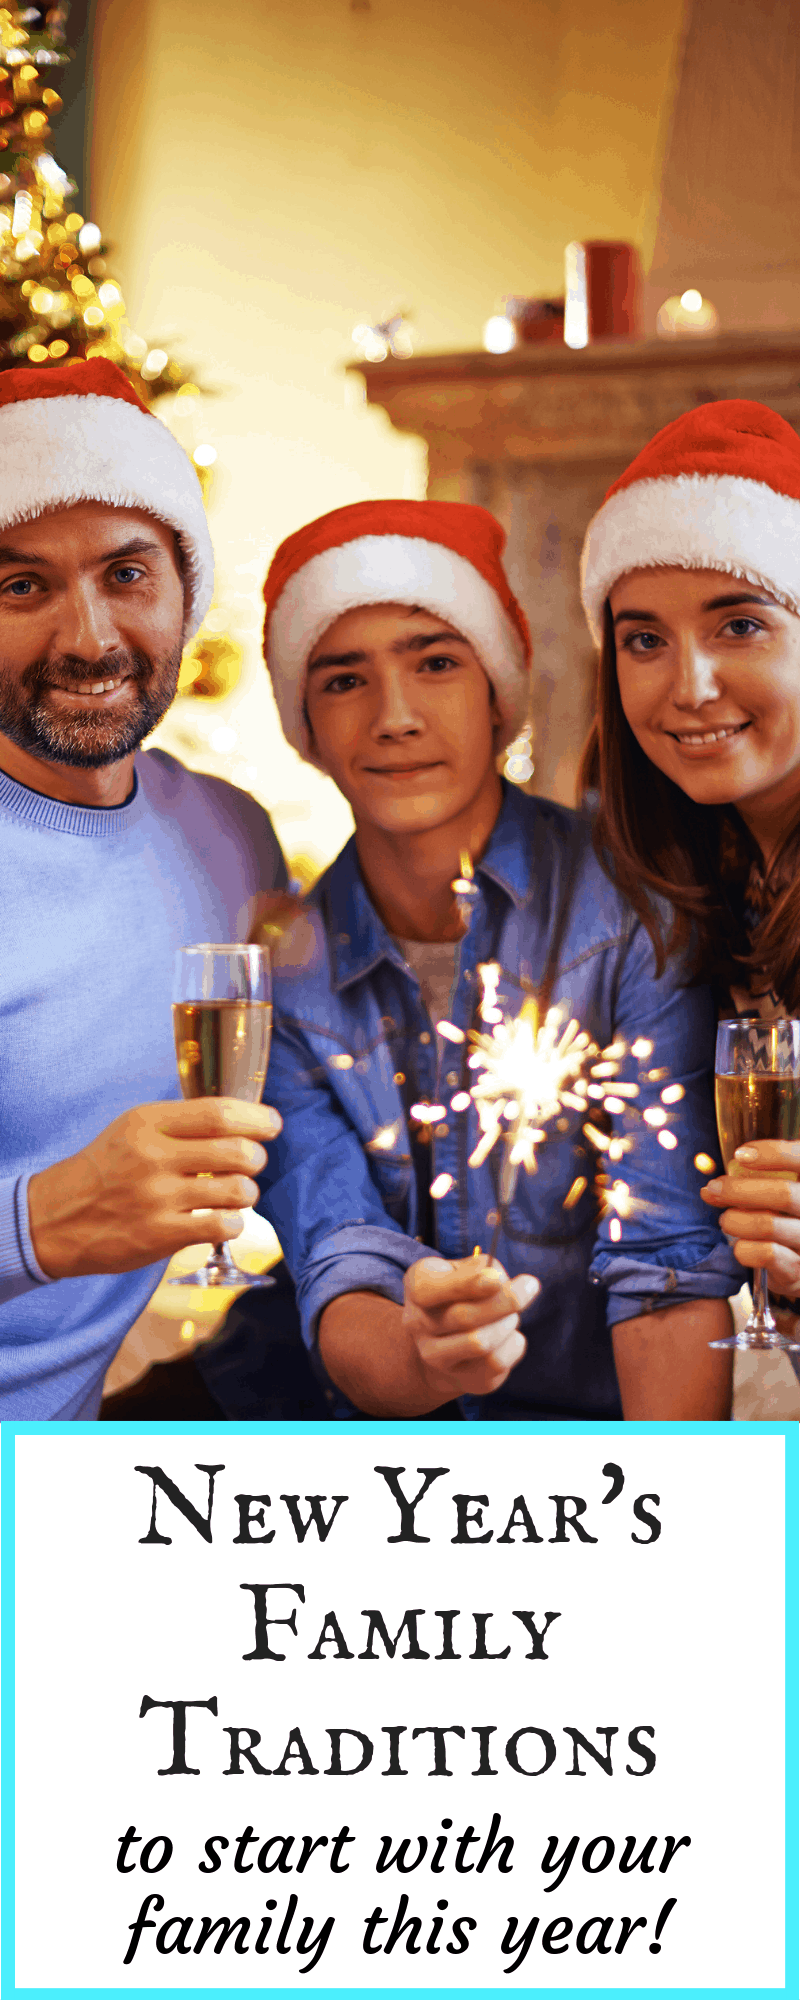 New Year's Family Traditions